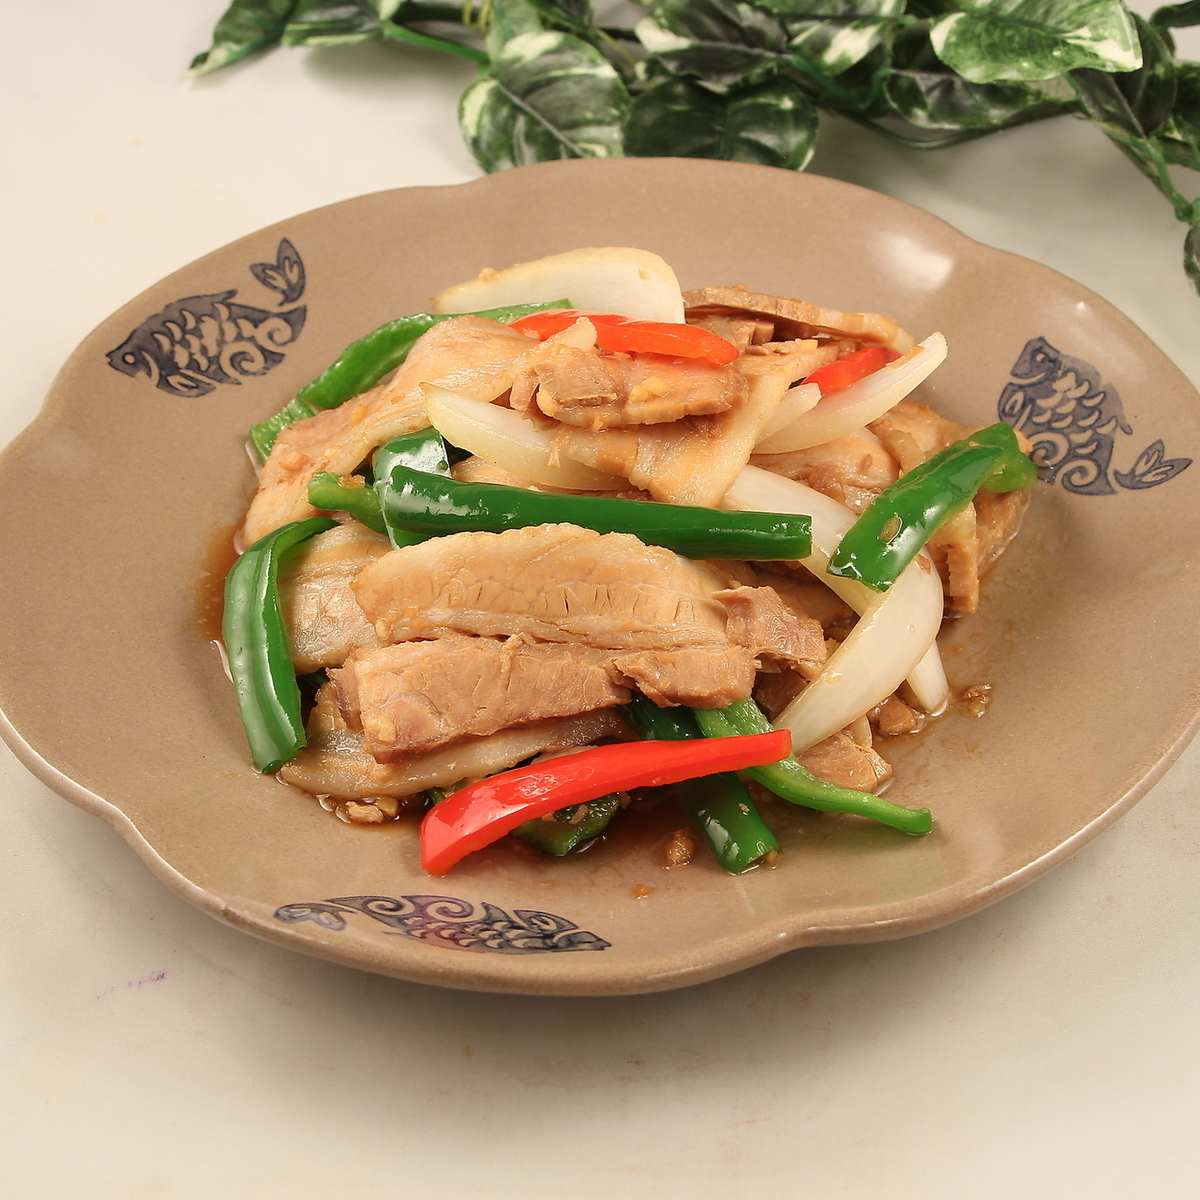 Stir-fried soft soy sauce rose / Sichuan real authentic Hoycoro